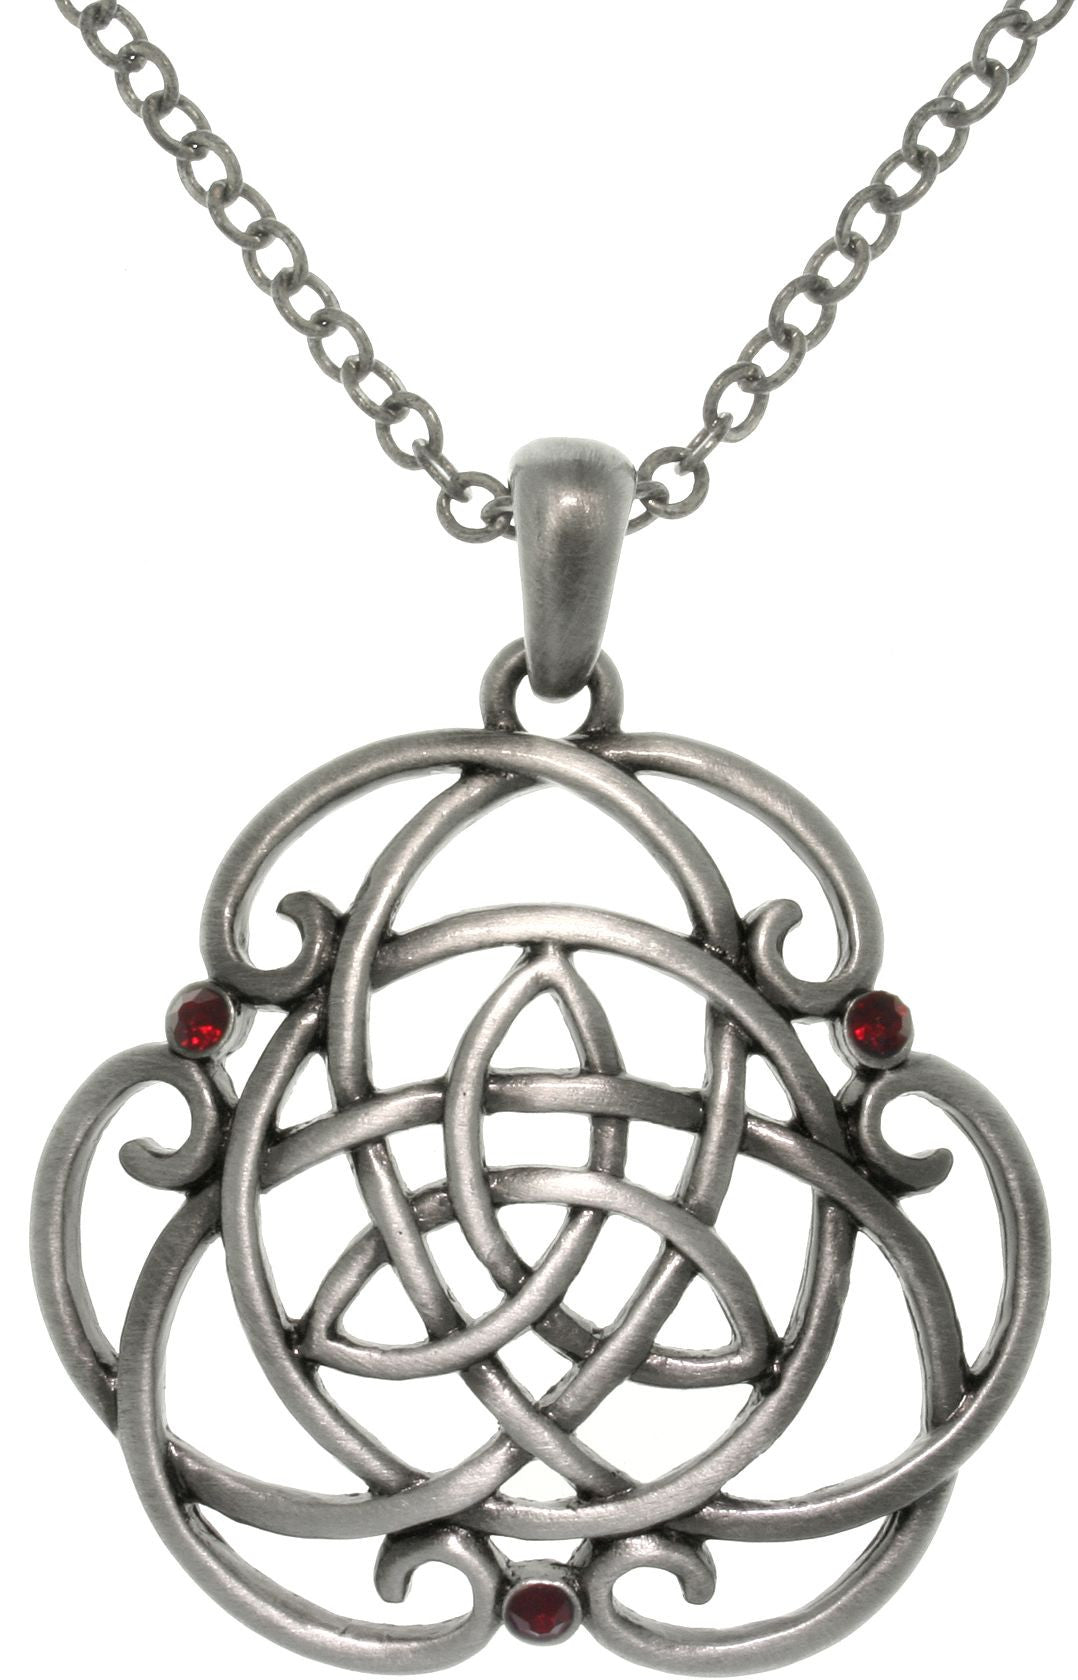 Jewelry Trends Pewter Alloy Celtic Trinity Knot Scroll Pendant with 23 Inch Chain Necklace